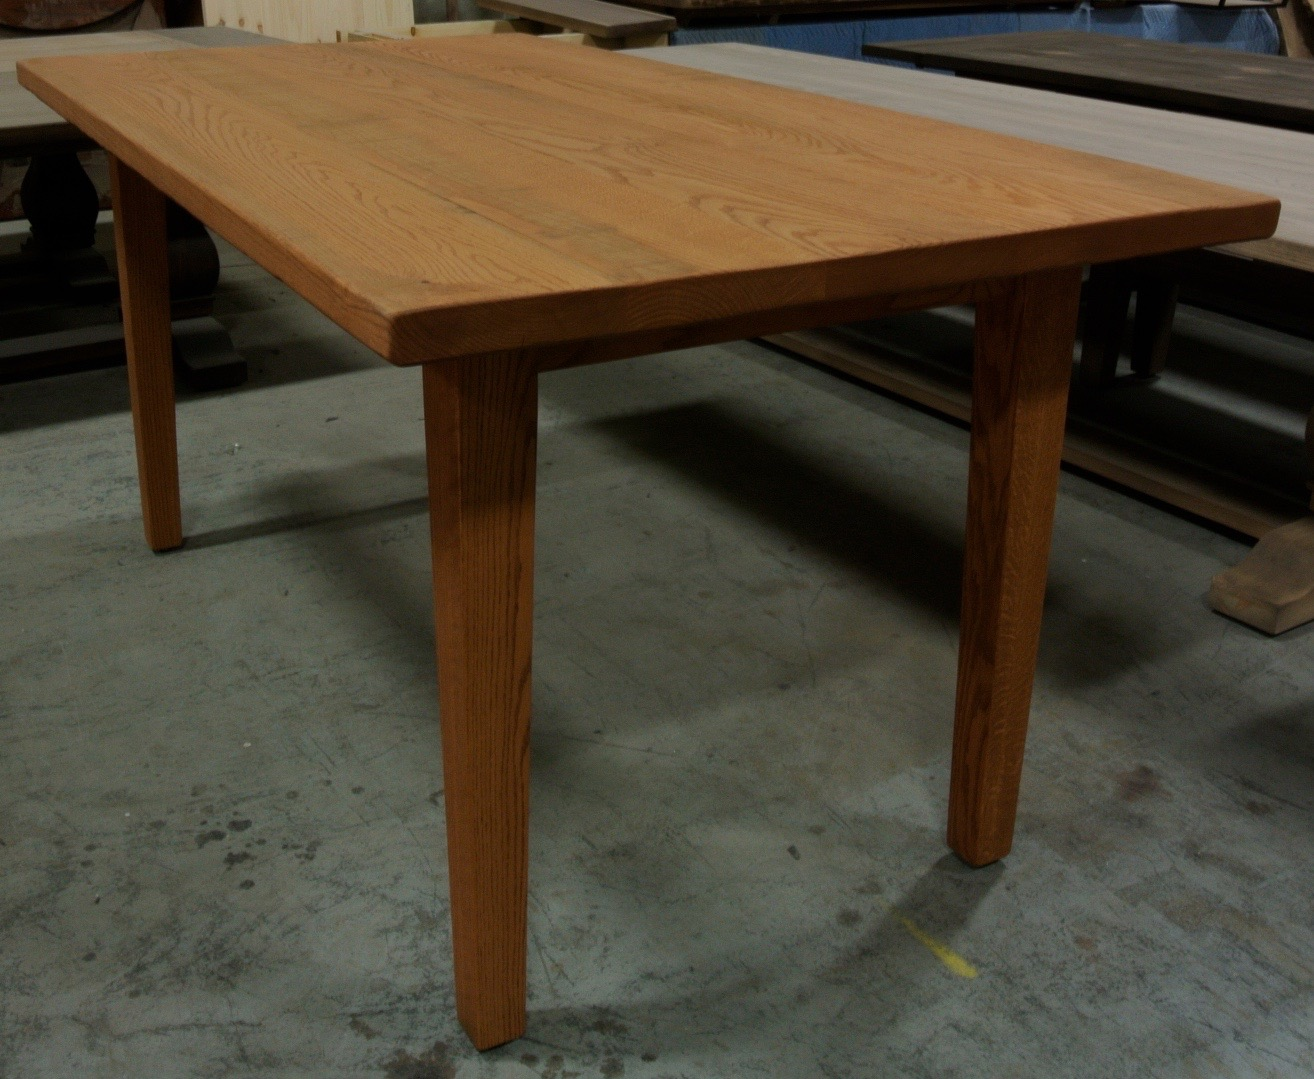 Farm Table with Tapered Legs. Red Oak.